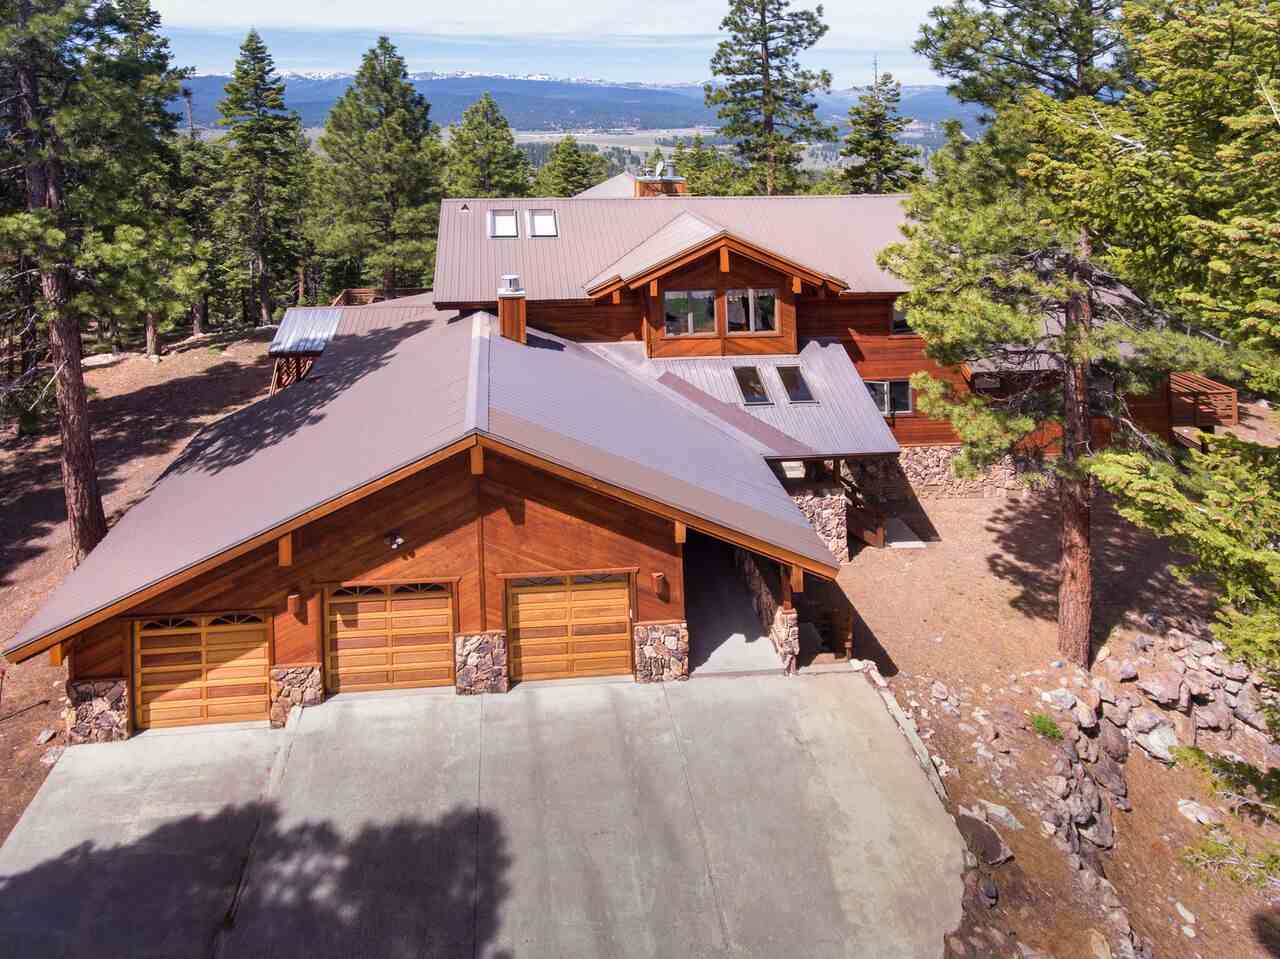 Single Family Home for Active at 11824 Fox Court 11824 Fox Court Truckee, California 96161 United States